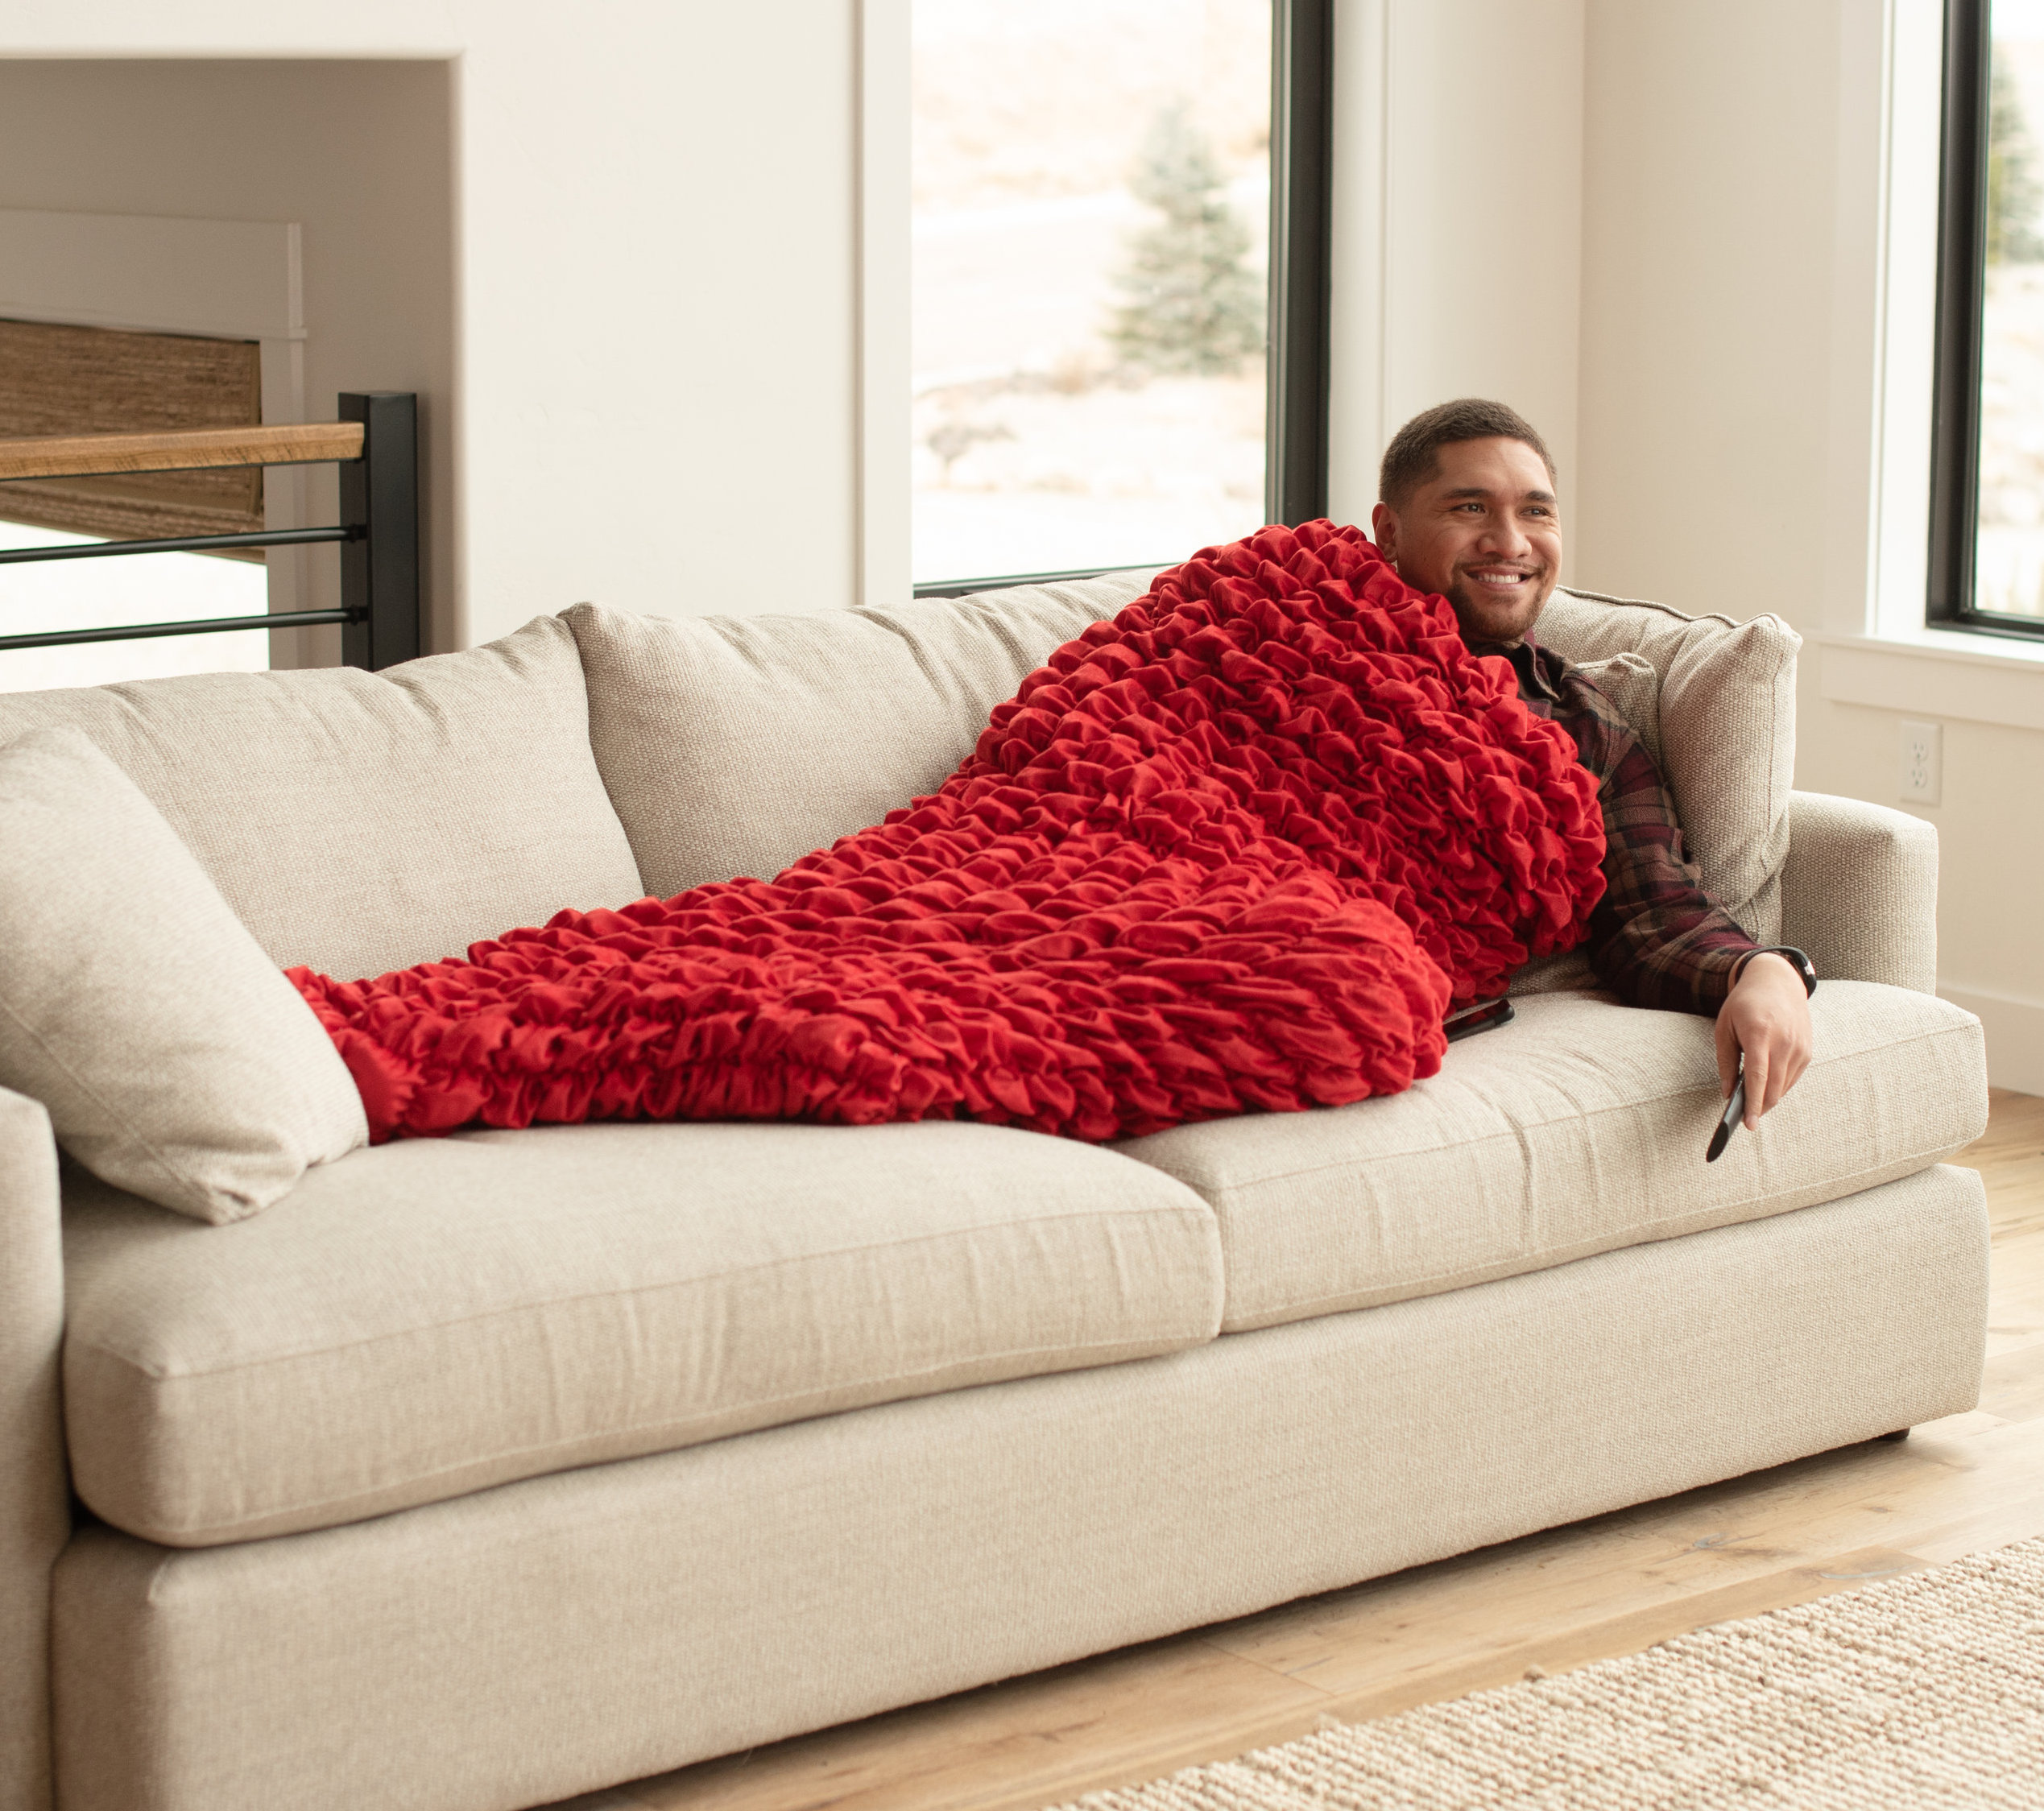 Red Adult Cocoon Sleep Sack For Teens and Adults